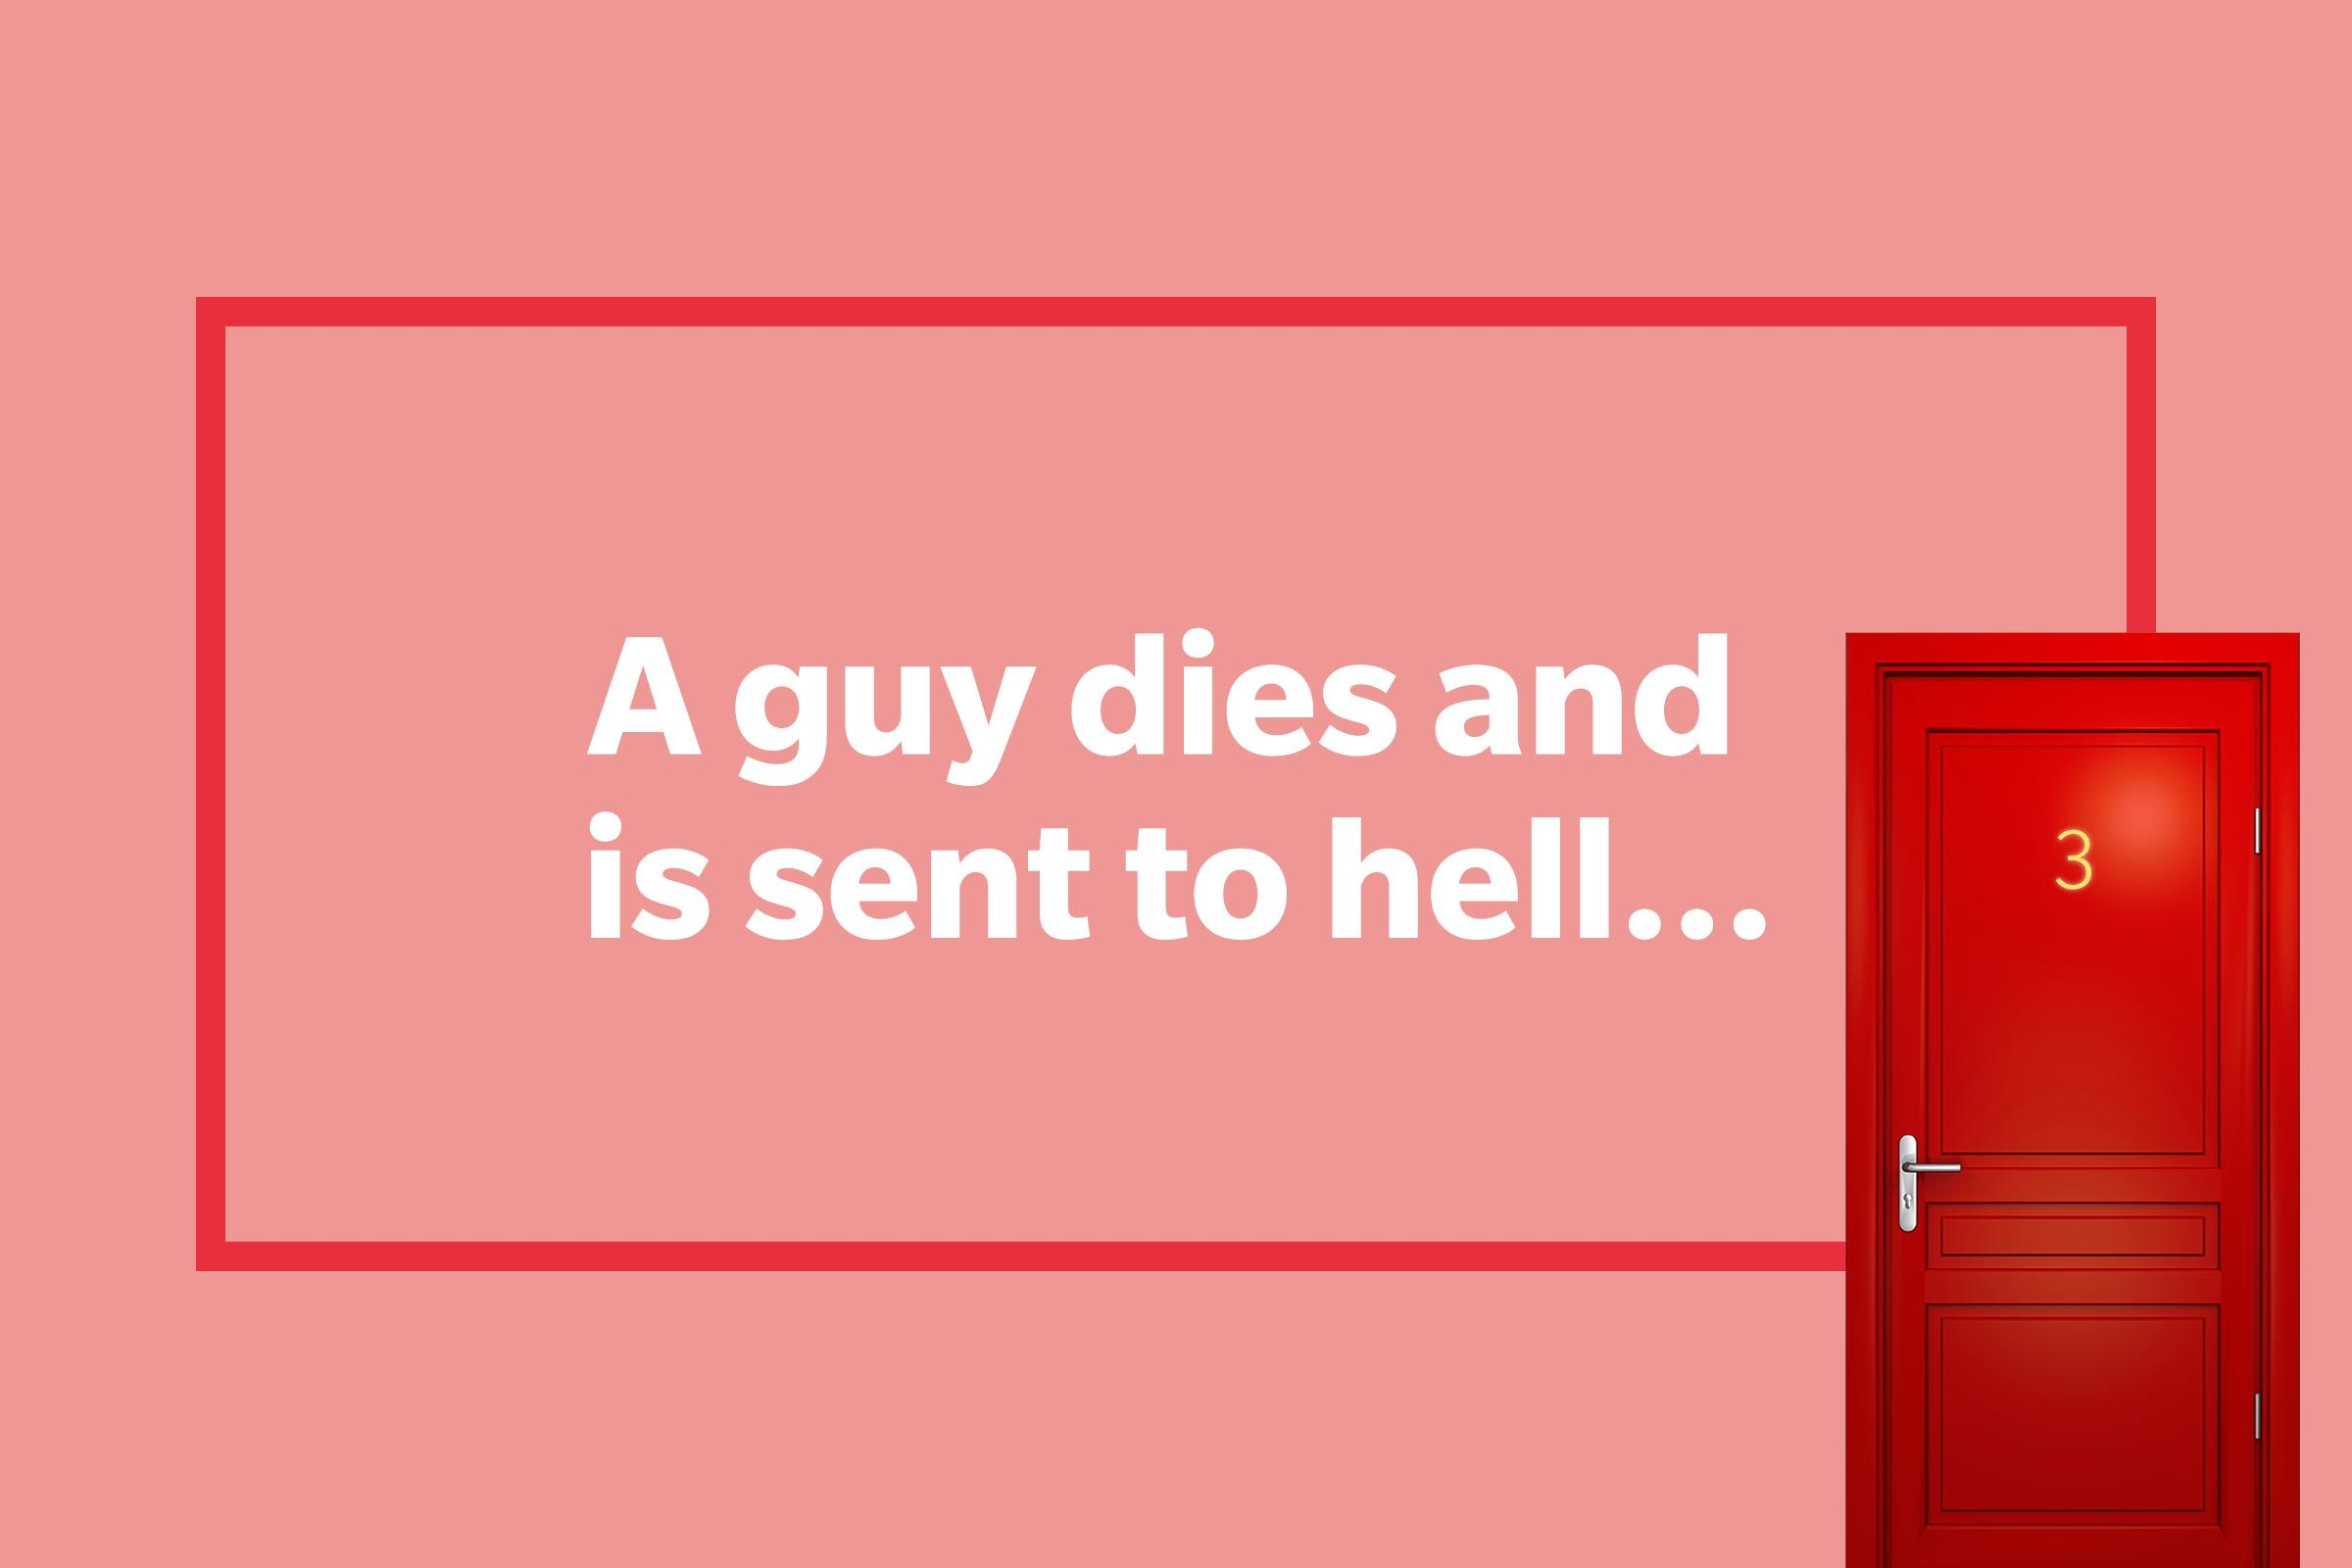 A guy dies and is sent to hell.